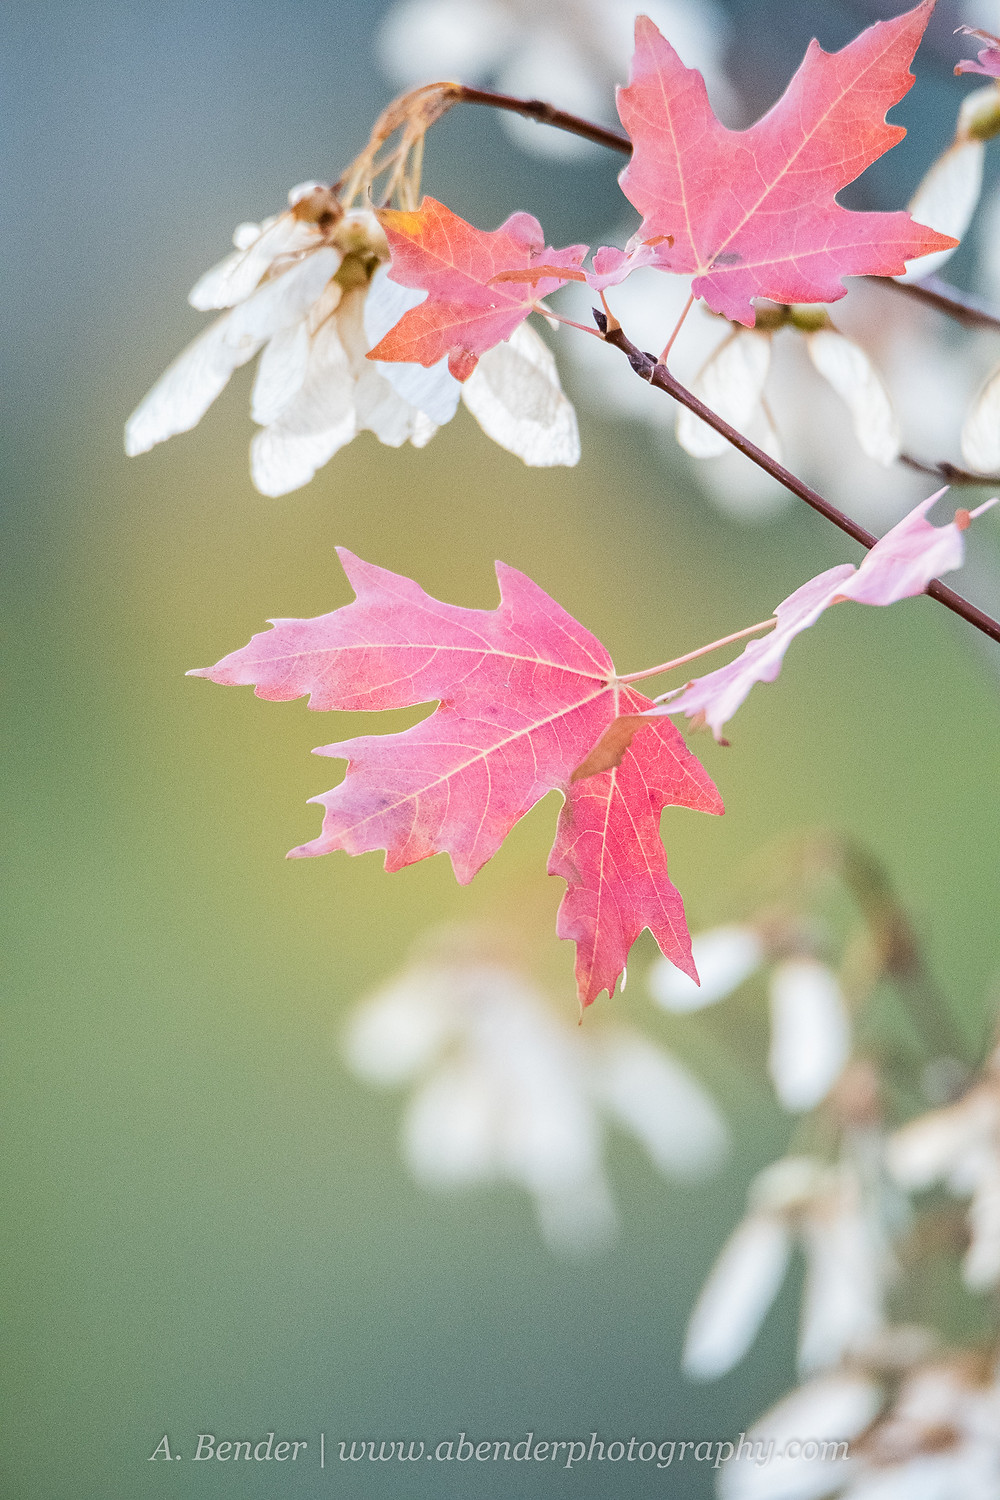 Red maple leaves and white maple seeds with wings on the tips of branches against a green background Wasatch Mountains autumn 2021 fall foliage | A Bender Photography LLC